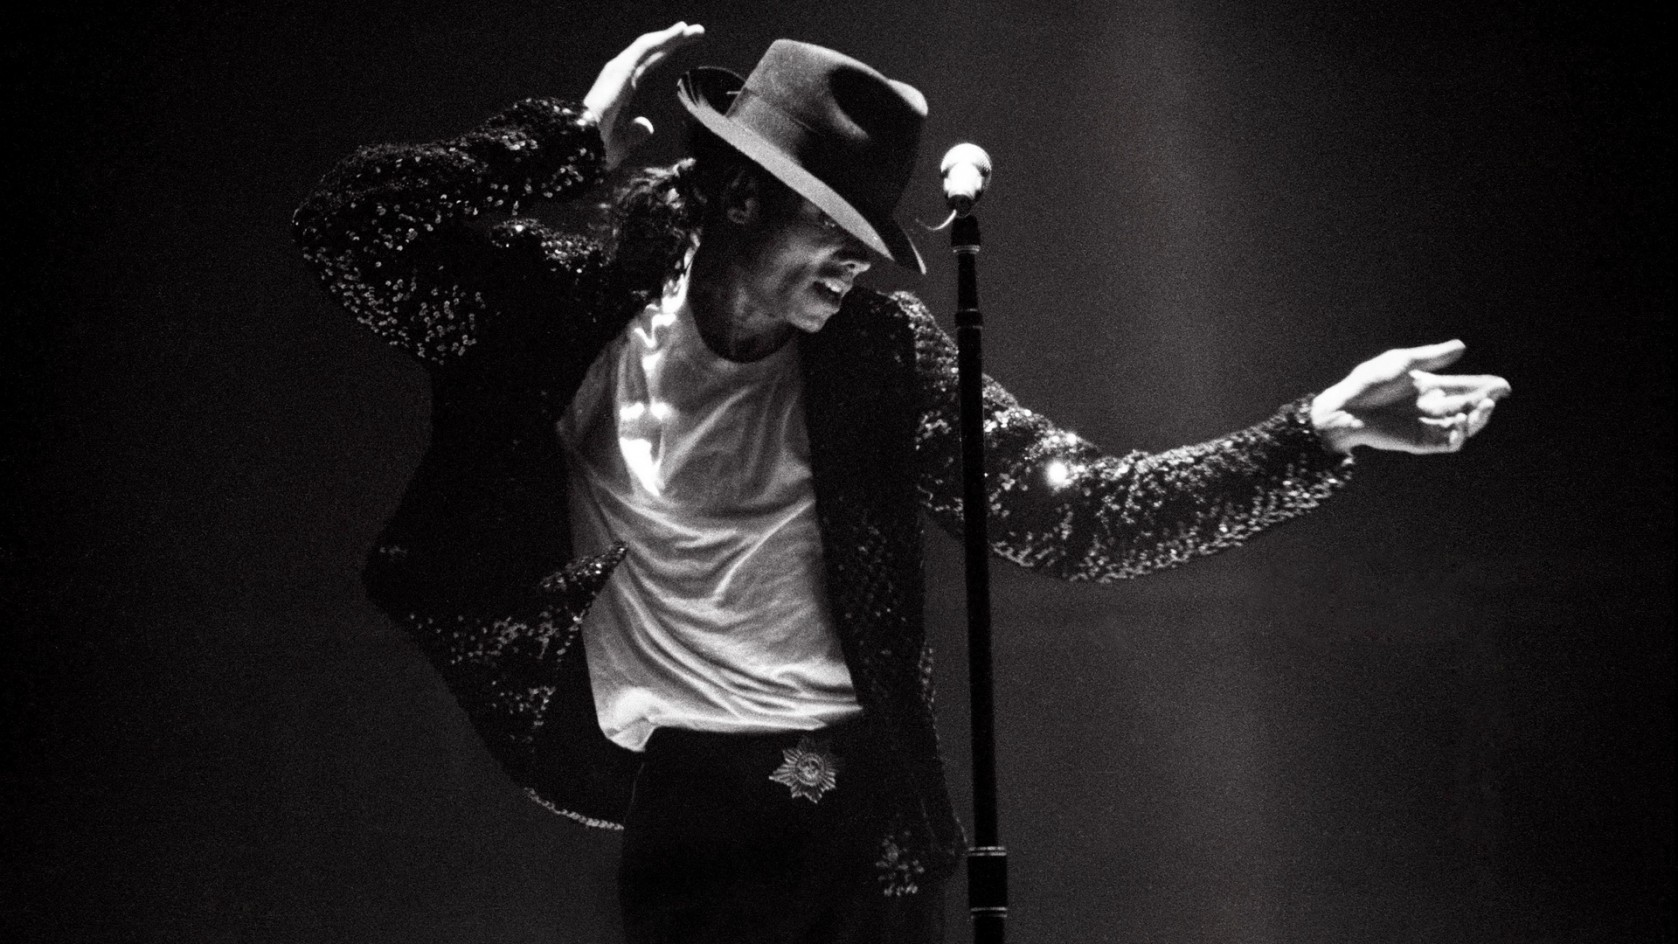 Michael Jackson was famous for his moonwalk.